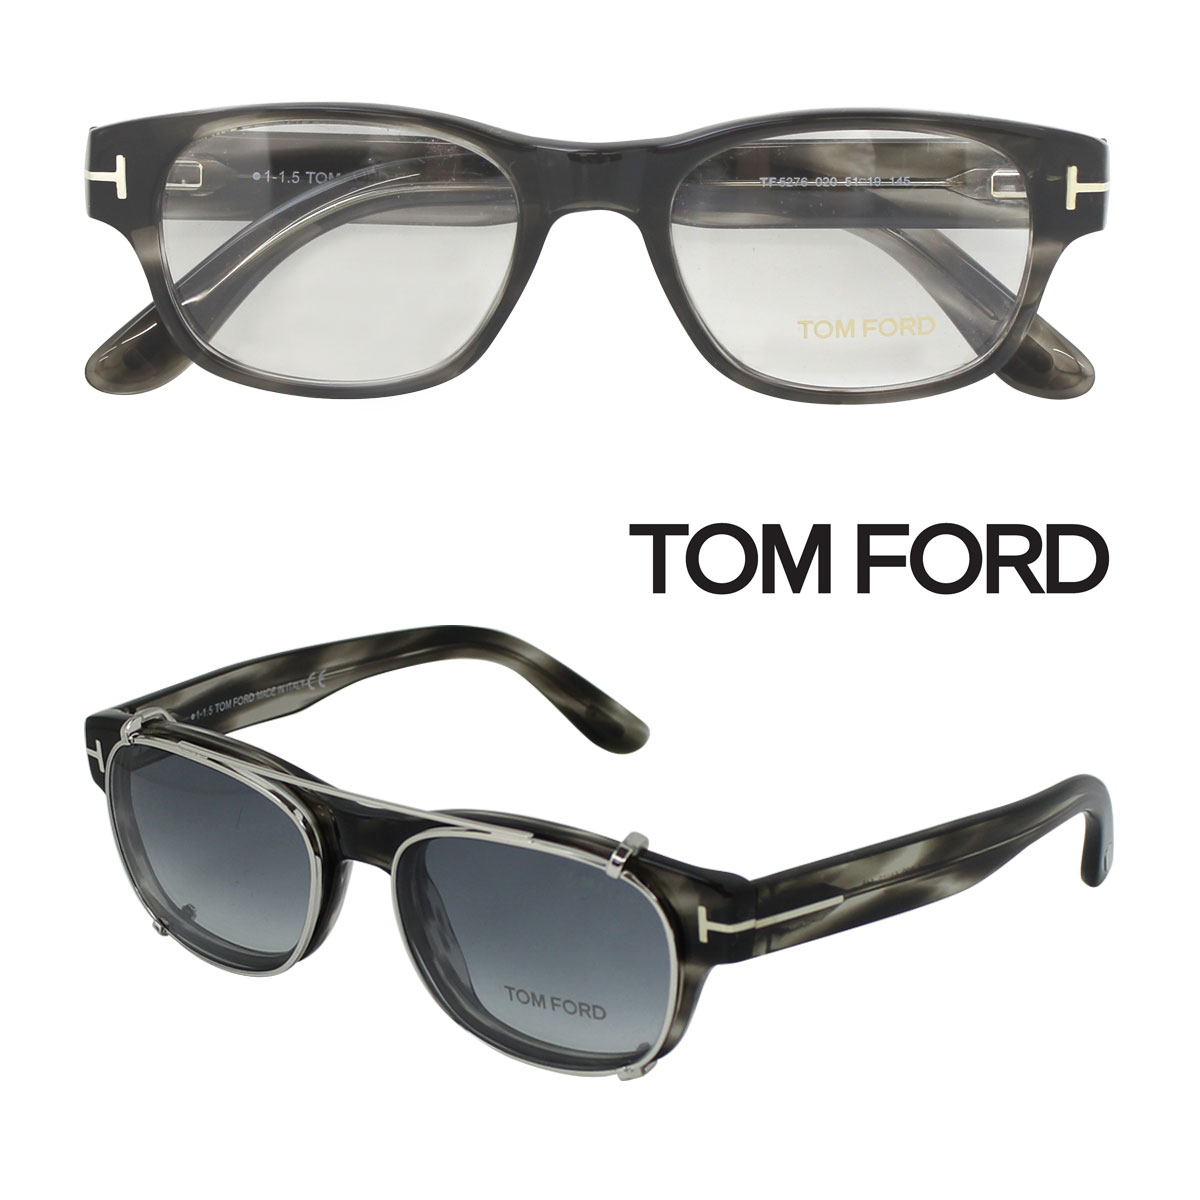 4eb65efa7a40 Whats up Sports   SOLD OUT  TOM FORD Tom Ford glasses glasses ...